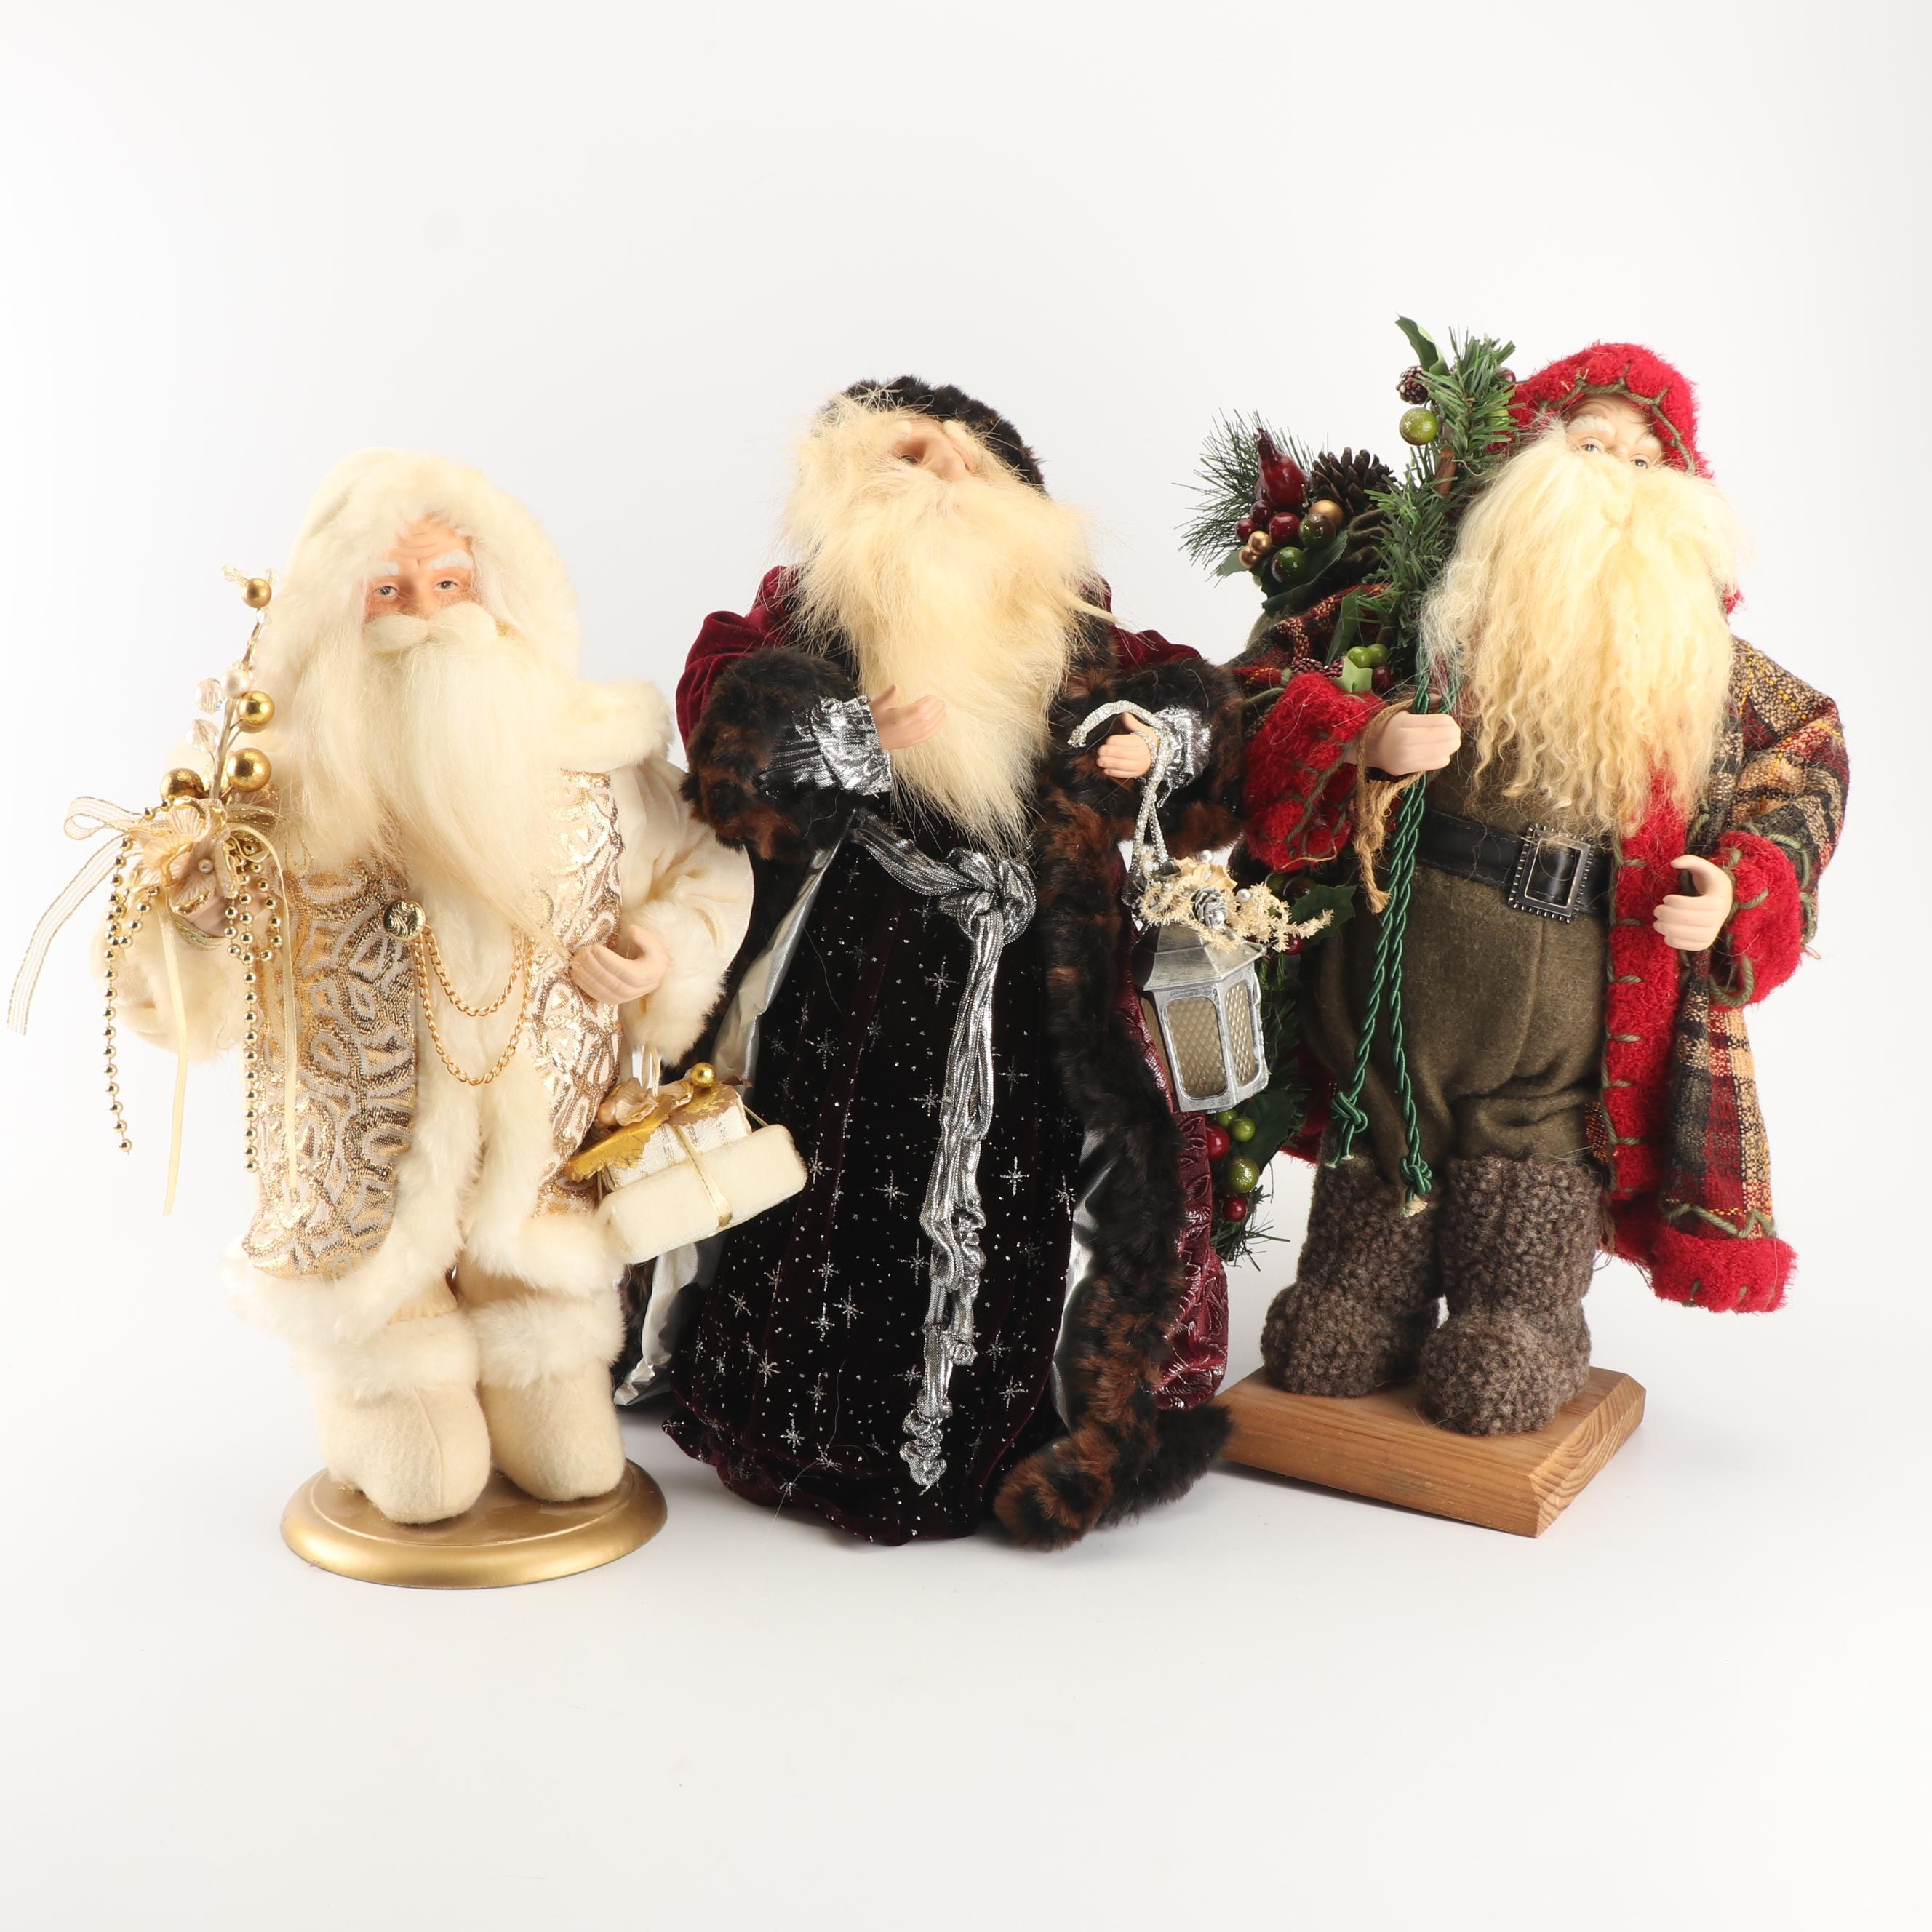 Plush Santa Figurines